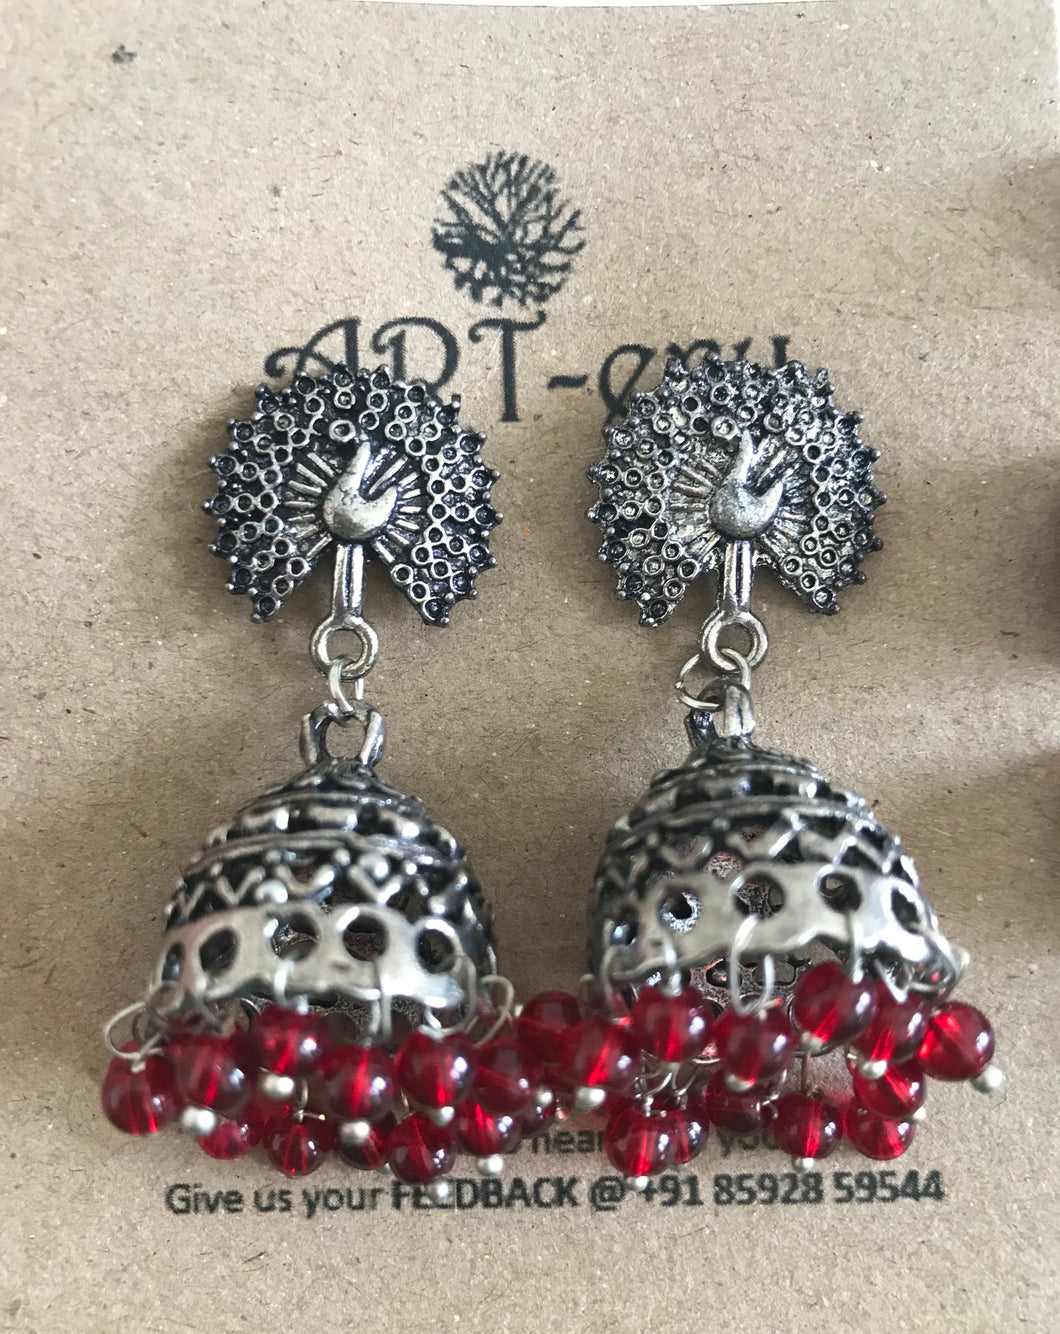 Peacock jhumka earrings with red beads